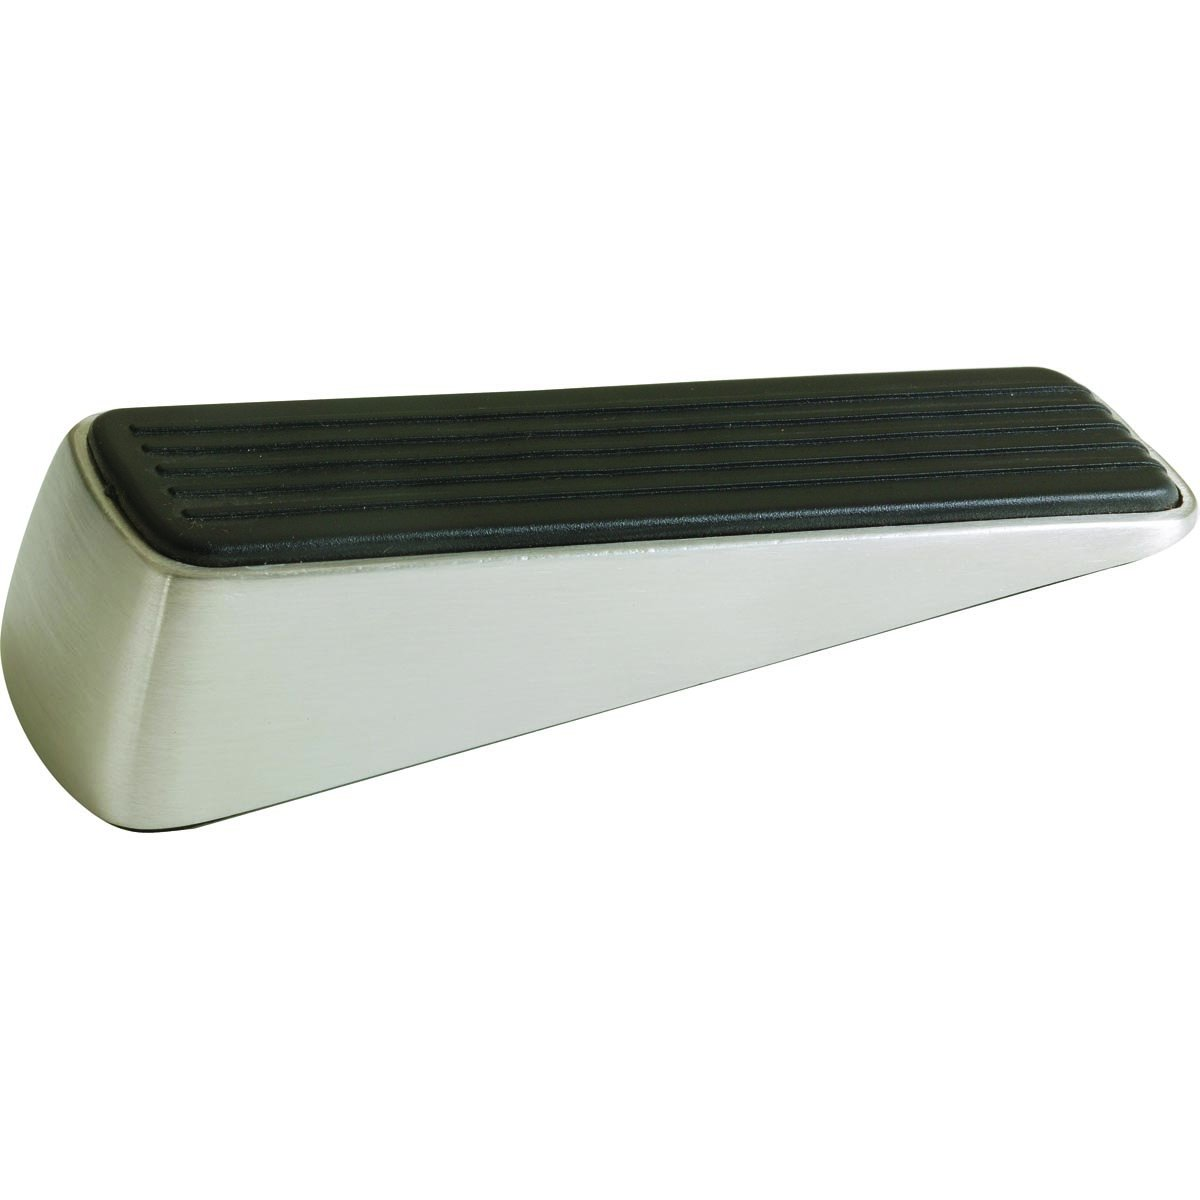 Shepherd Hardware 3314 Designer Satin Nickel Door Wedge with Non-Skid Rubber Base Grip by Shepherd Hardware (Image #1)